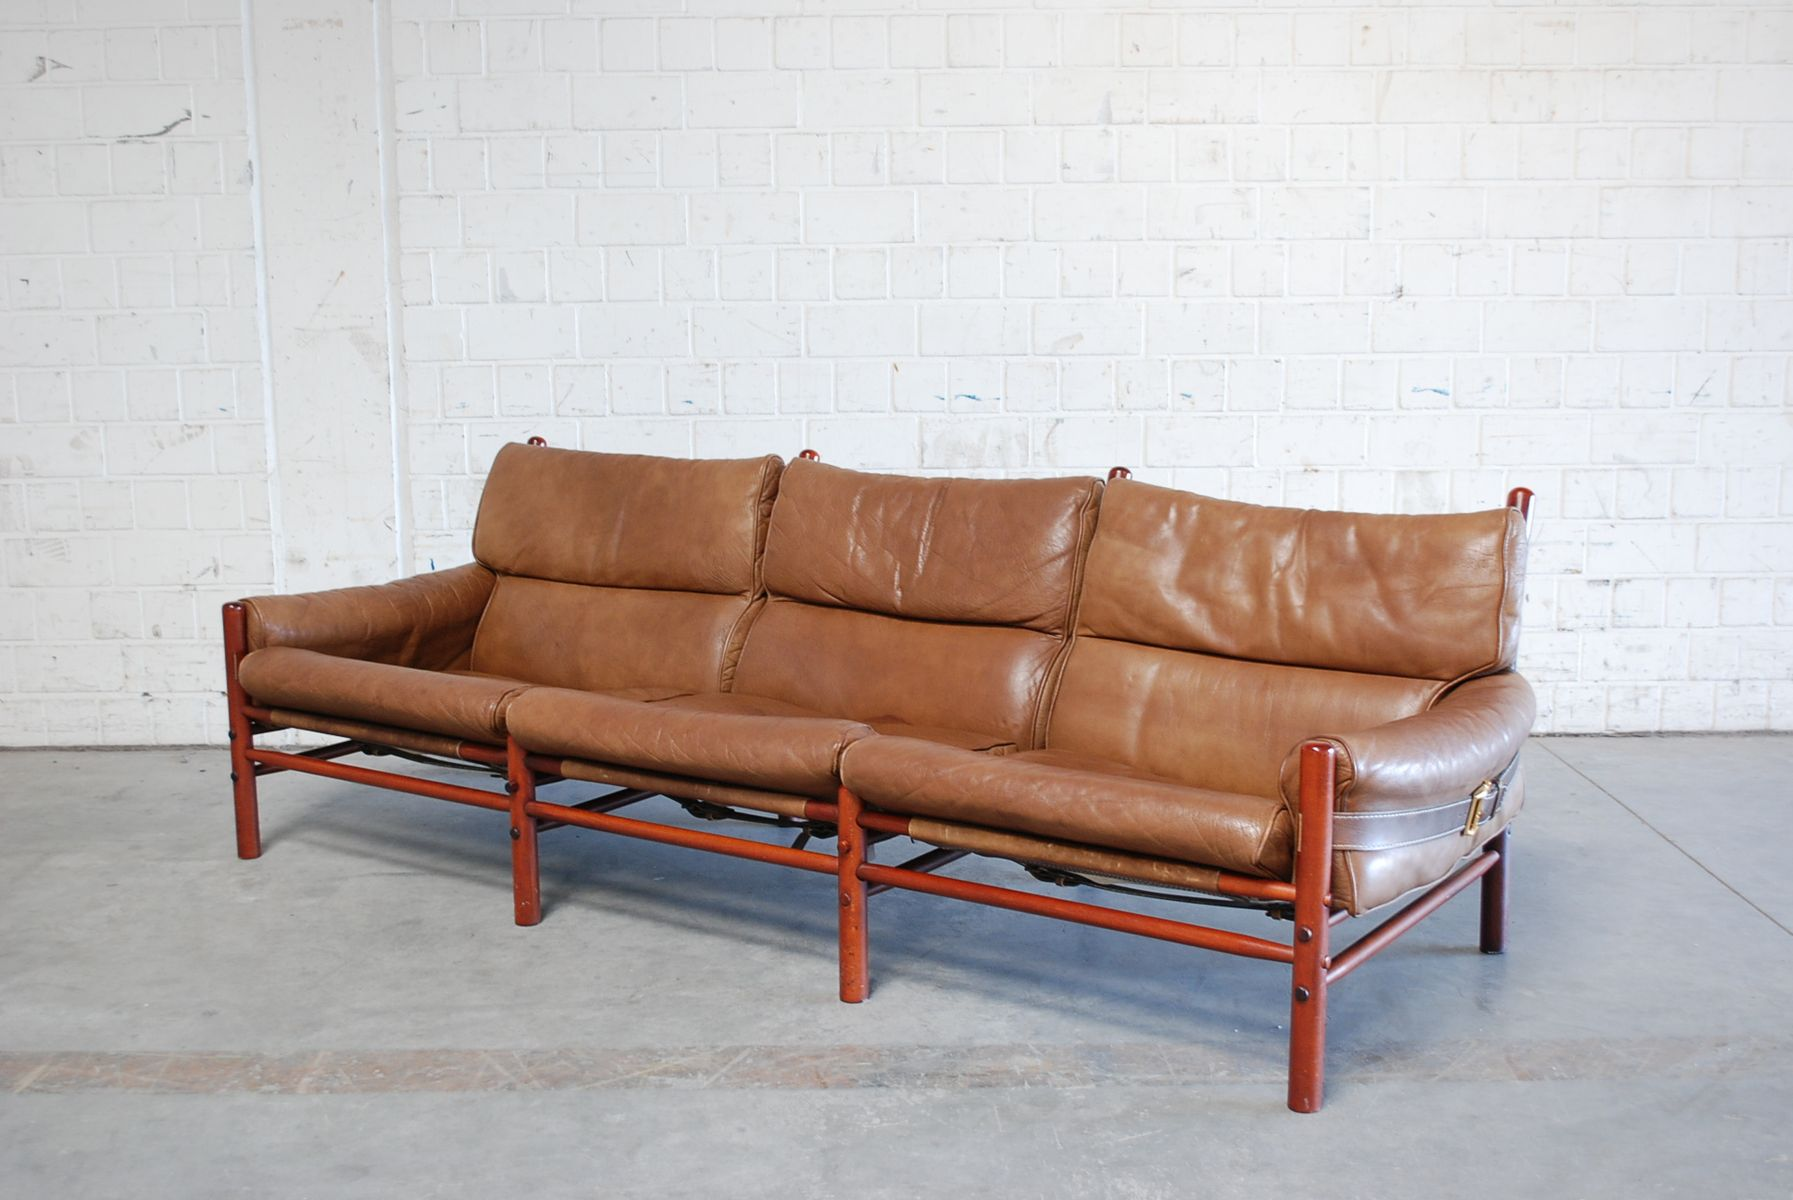 Möbel 24 Sofa Vintage Kontiki 3 Seater Leather Sofa By Arne Norell